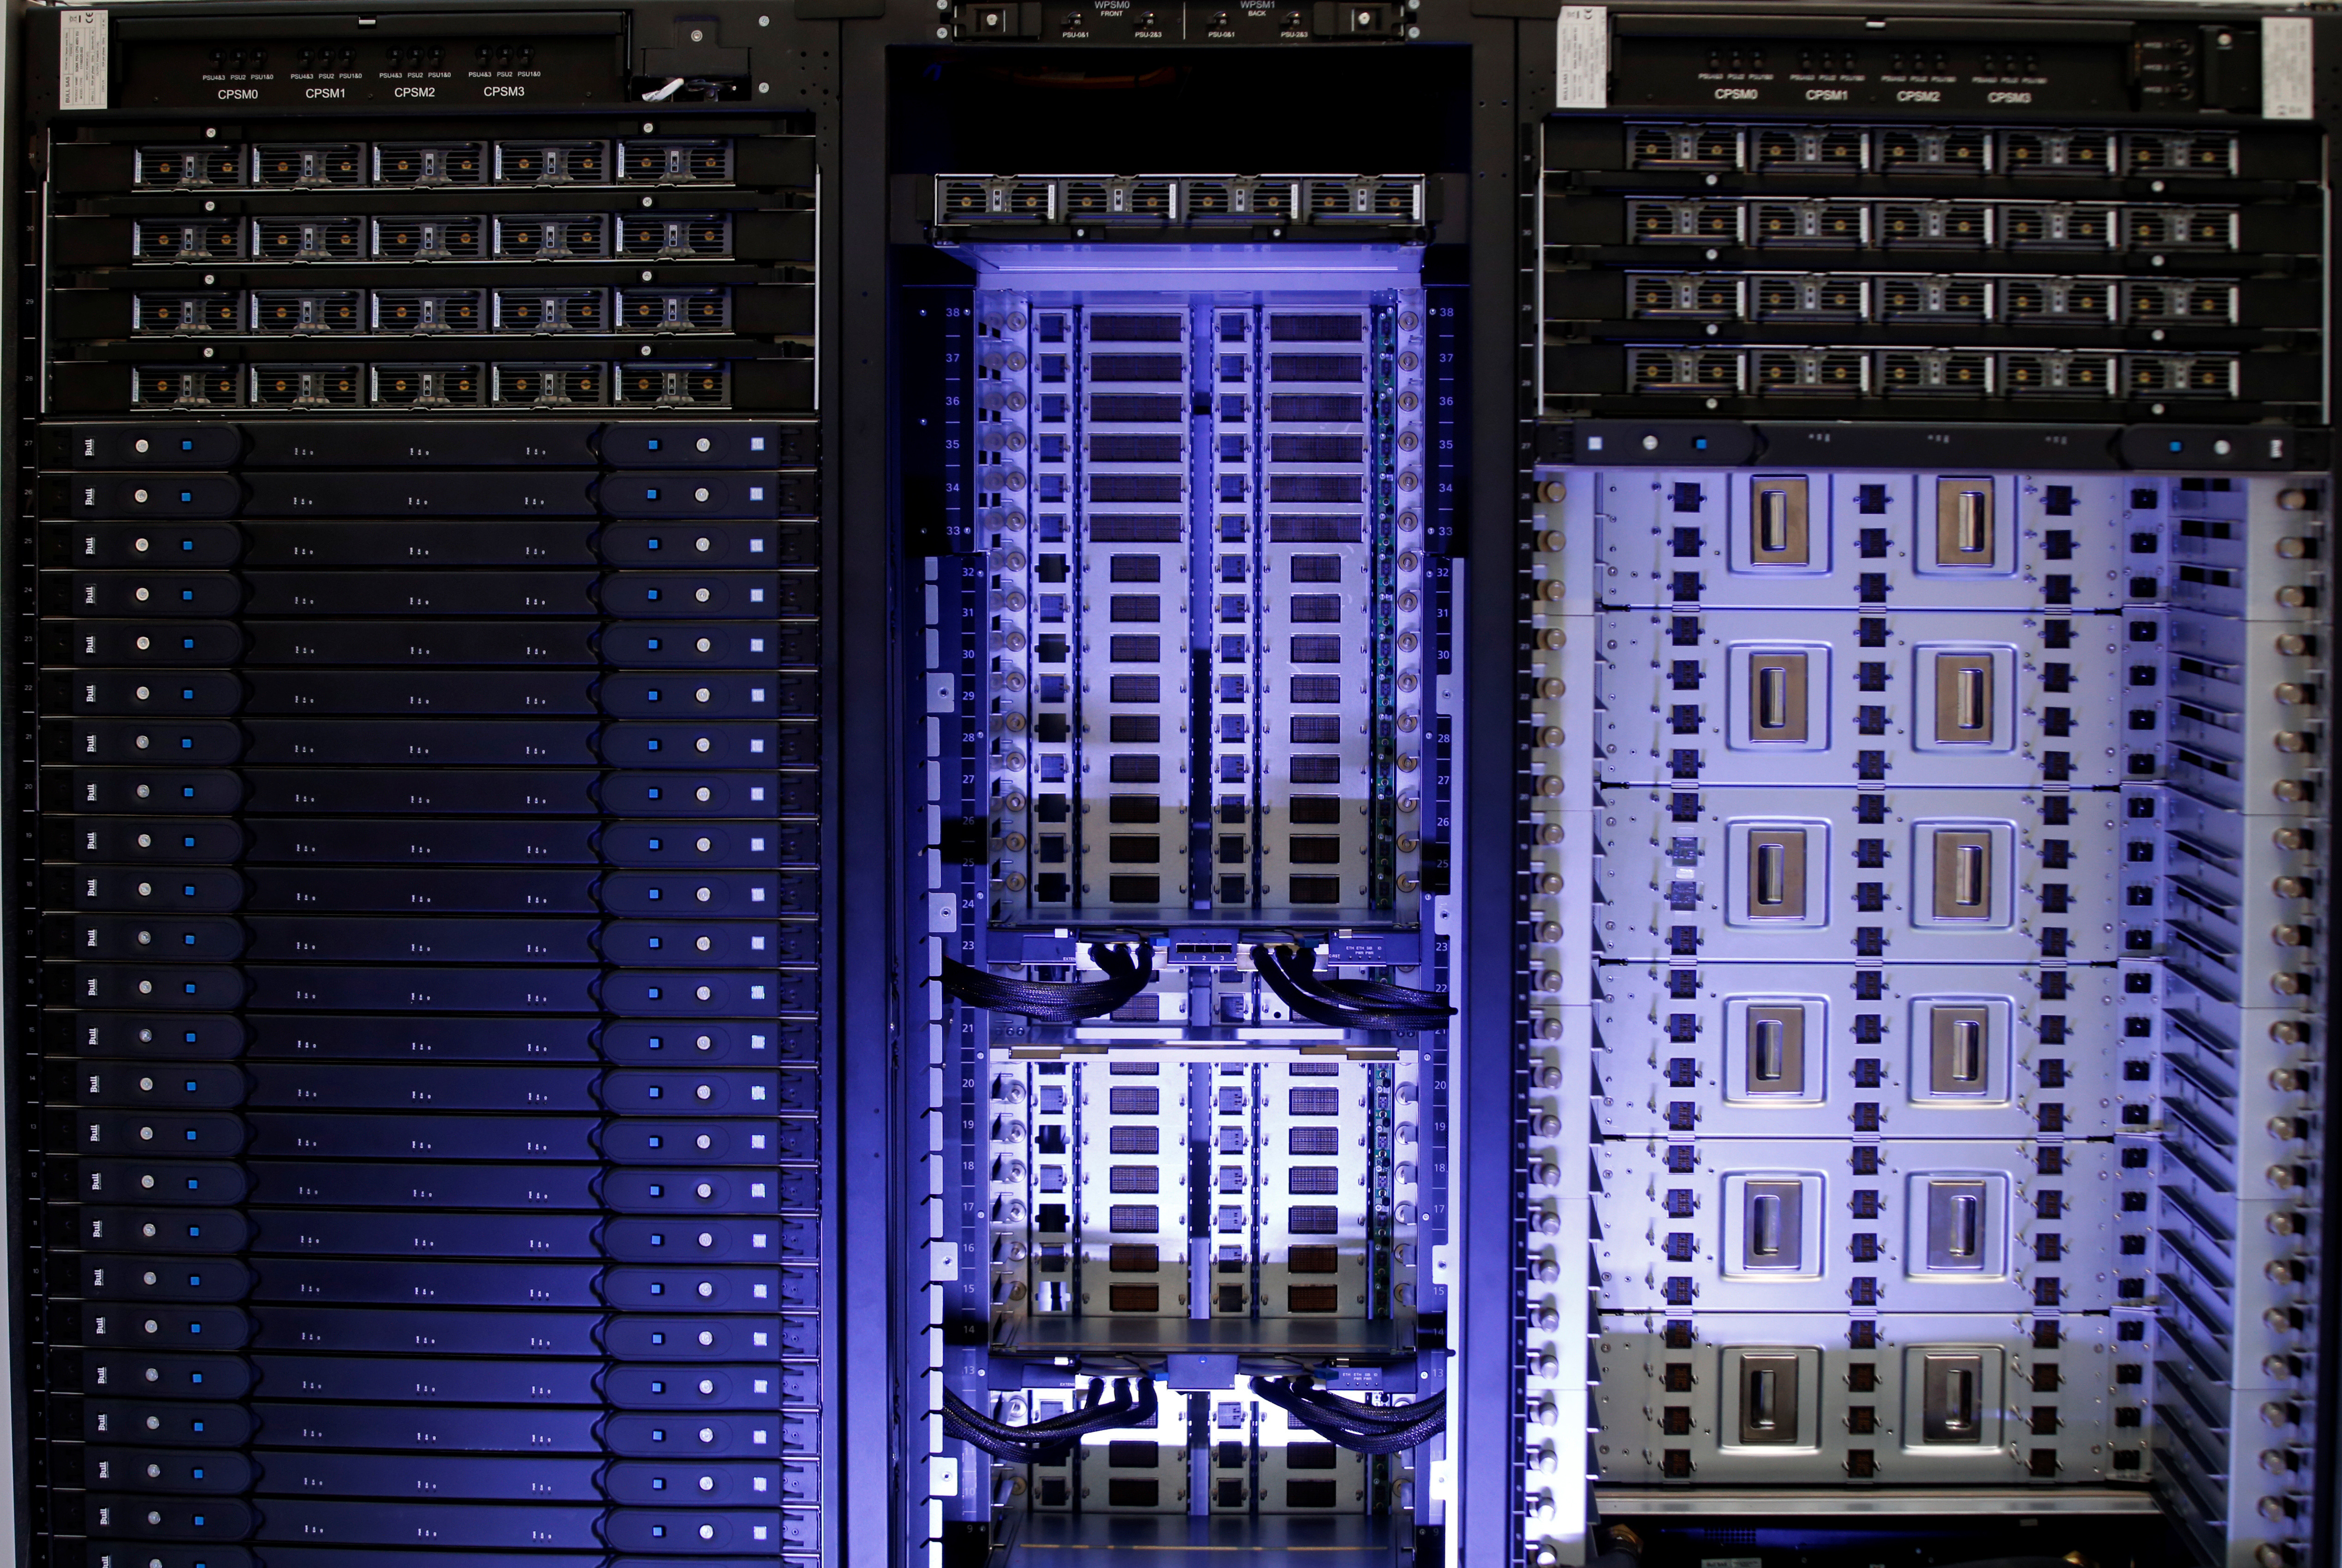 The new Bull sequana supercomputer is seen during presentation in Paris, France, April 12, 2016.